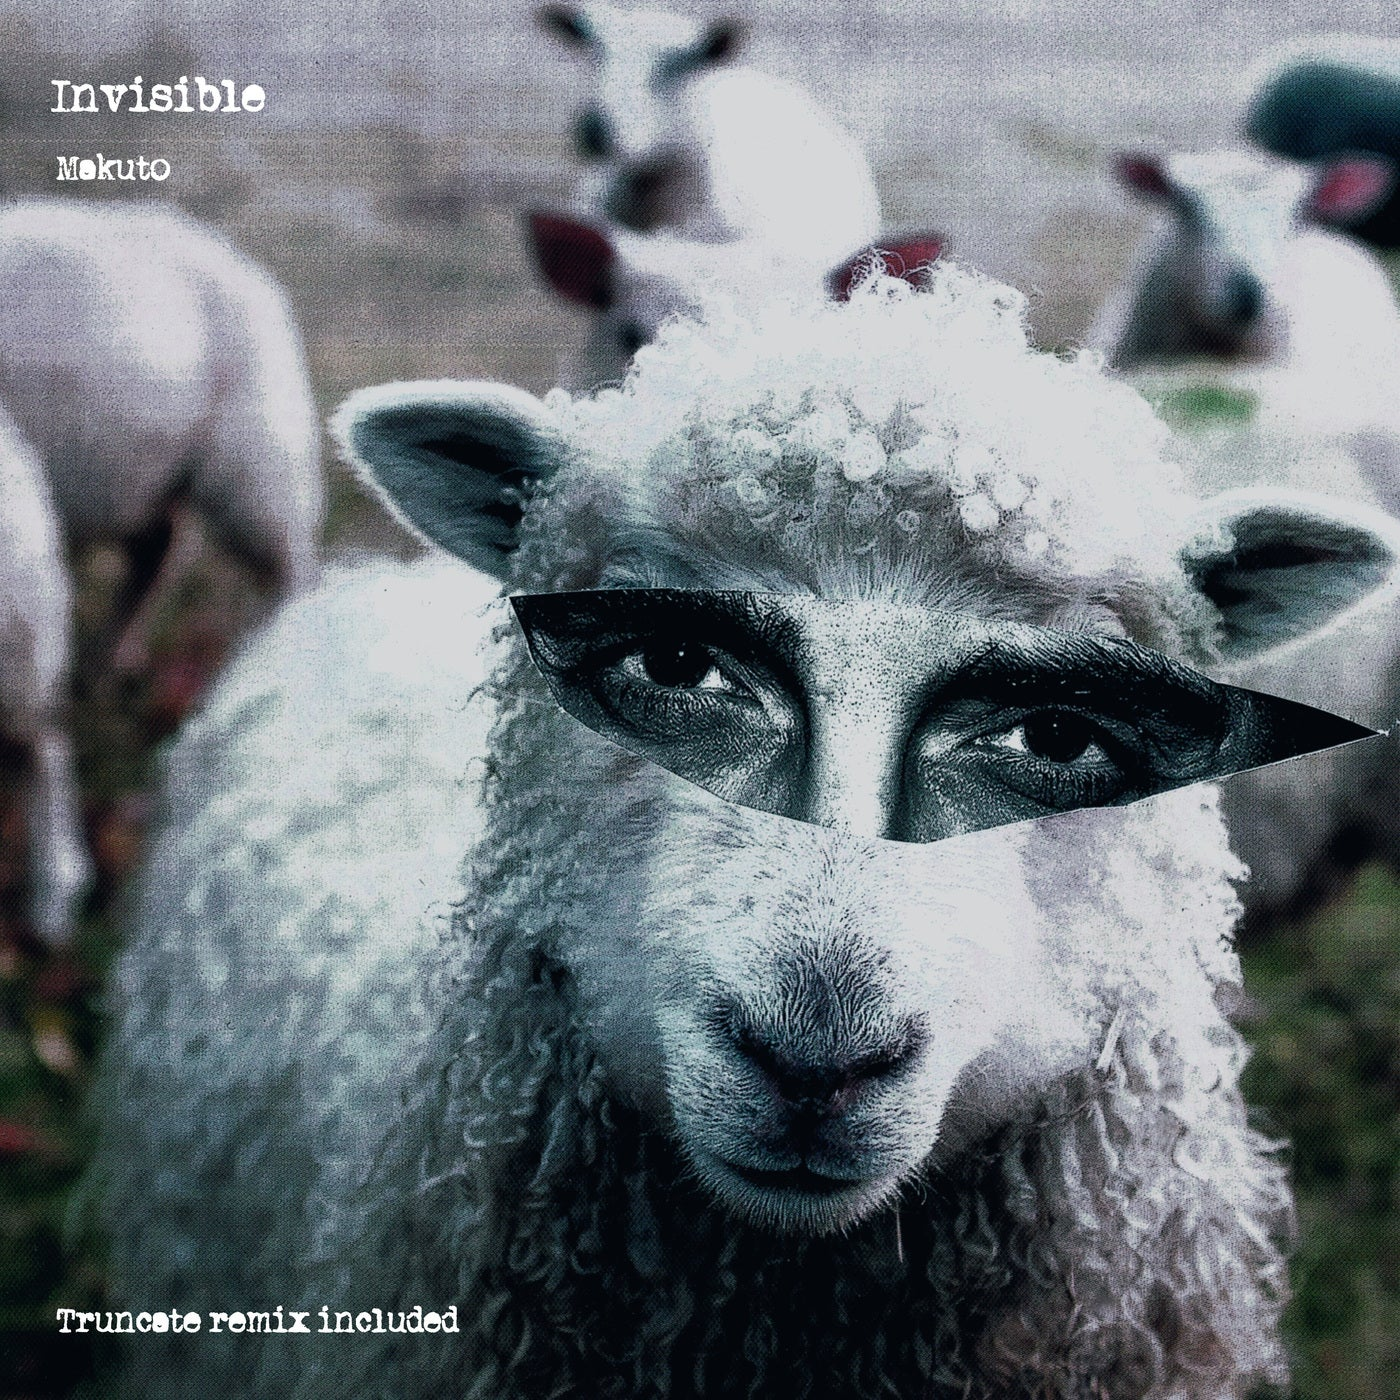 Download Invisible on Electrobuzz